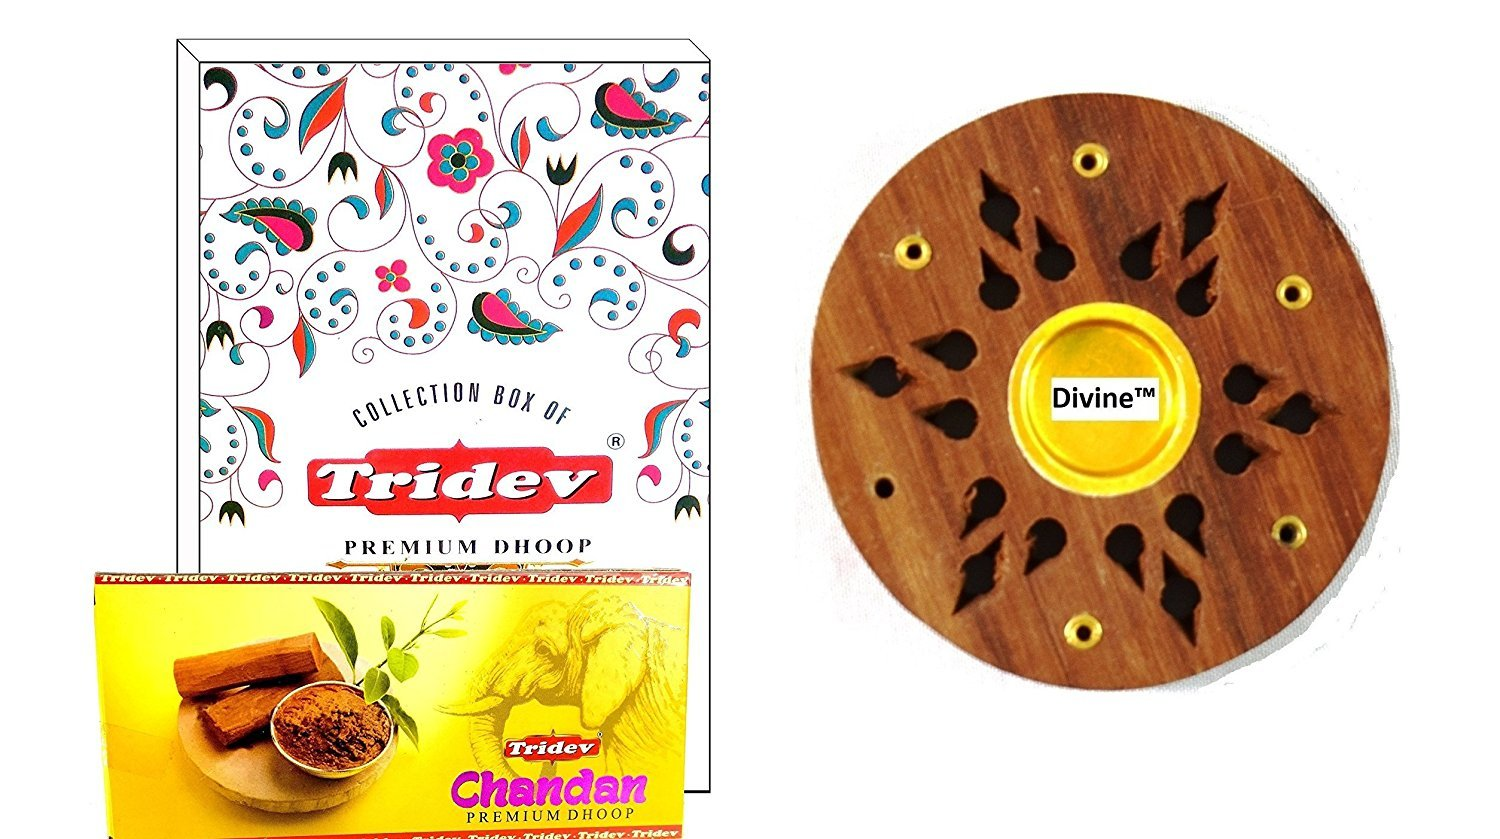 Divine Incense Holder Free with Chandan Premium Dhoop Incense 1440 Grams Box | 12 Packs of 120 Grams in a Box | Export Quality by Divine